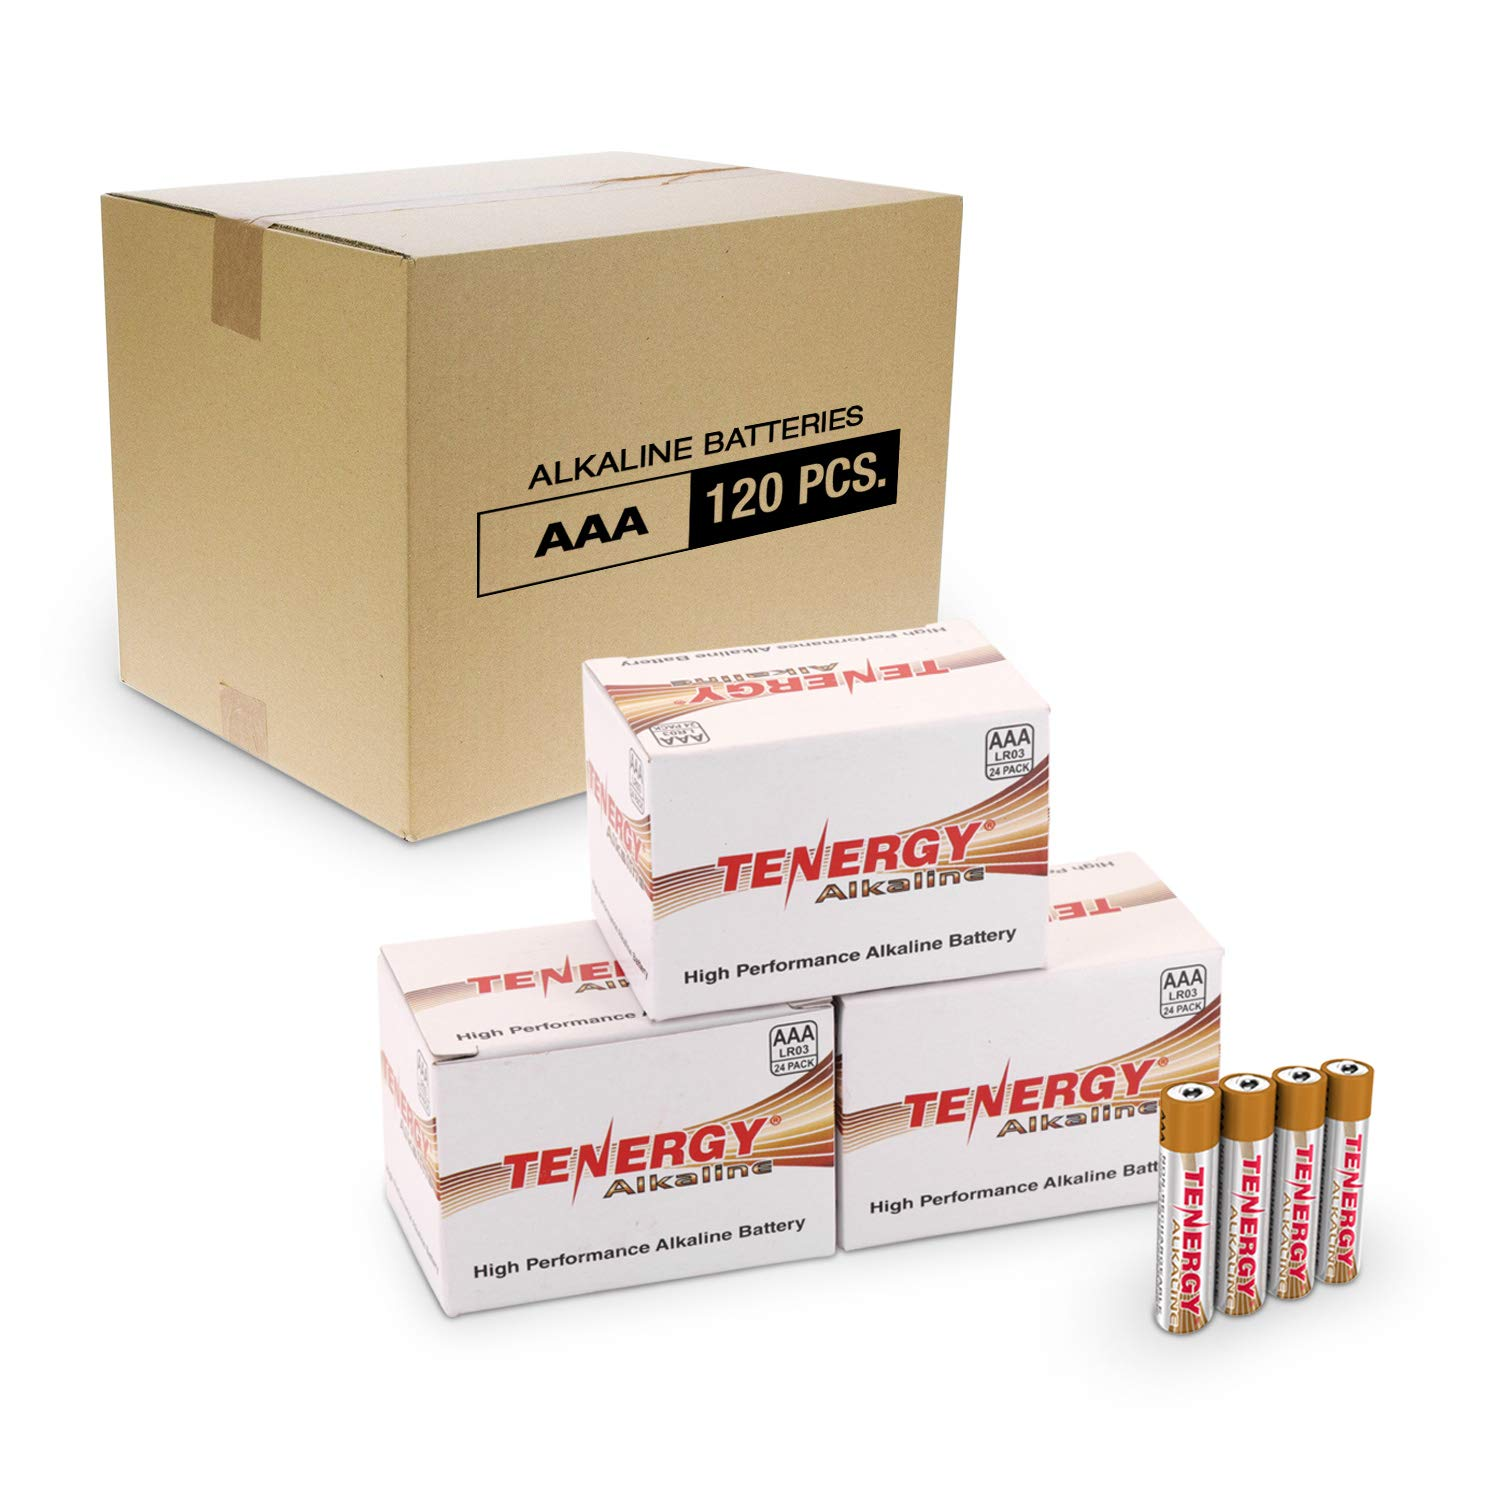 Tenergy 1.5V AAA Alkaline Battery, High Performance AAA Non-Rechargeable Batteries for Clocks, Remotes, Toys & Electronic Devices, AAA Cell Batteries, 120-Pack